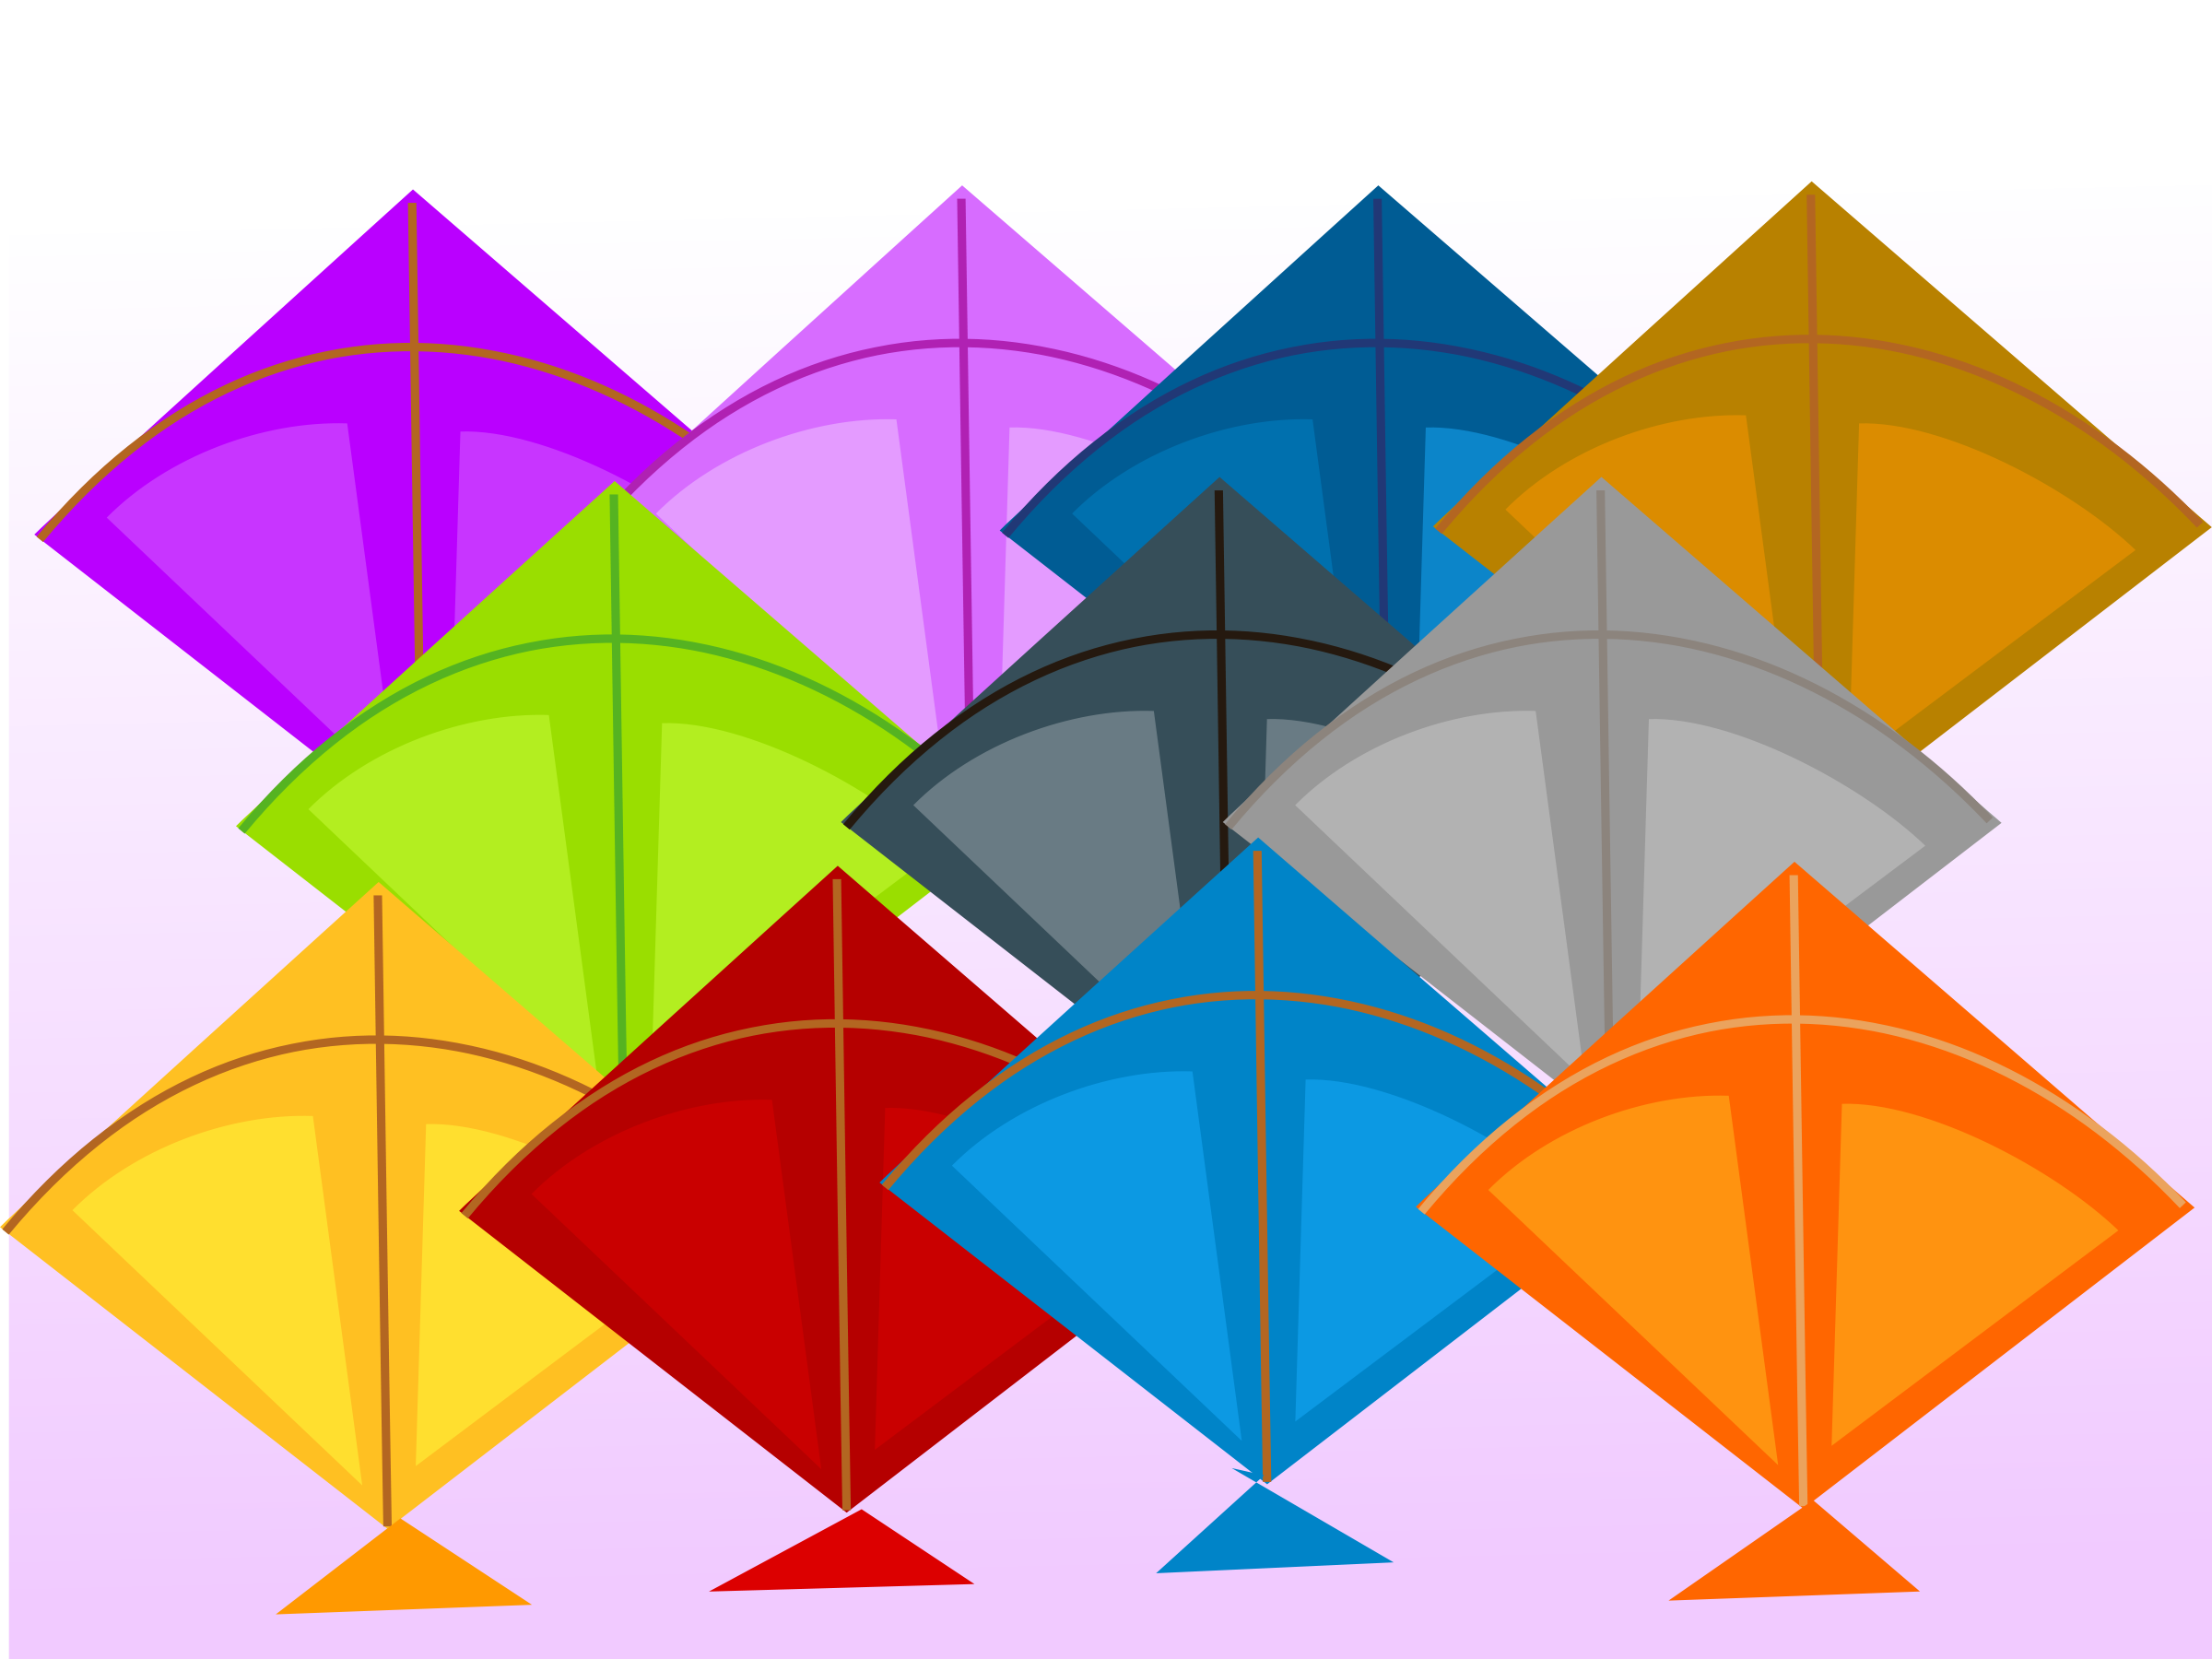 Kite Clipart | Clipart Panda - Free Clipart Images